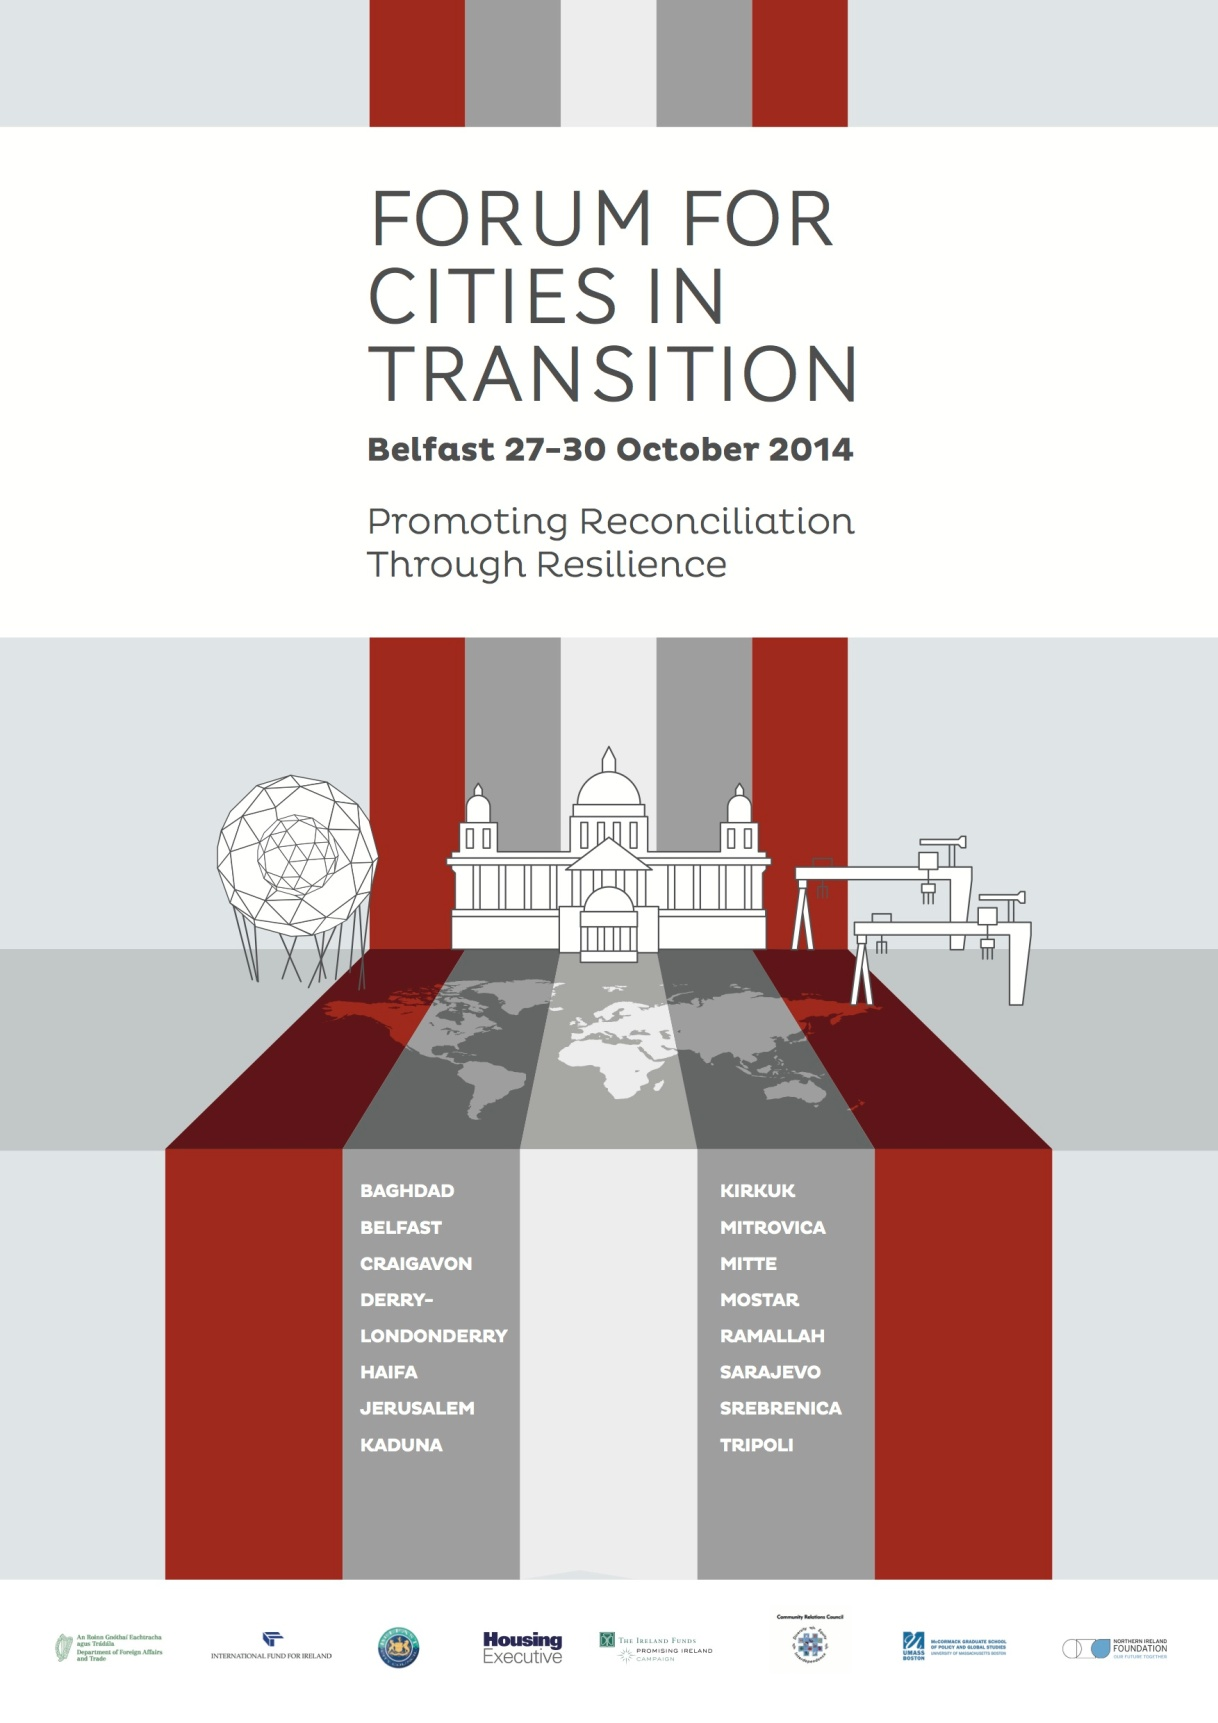 The 5th annual gathering of the Forum for Cities inTransition